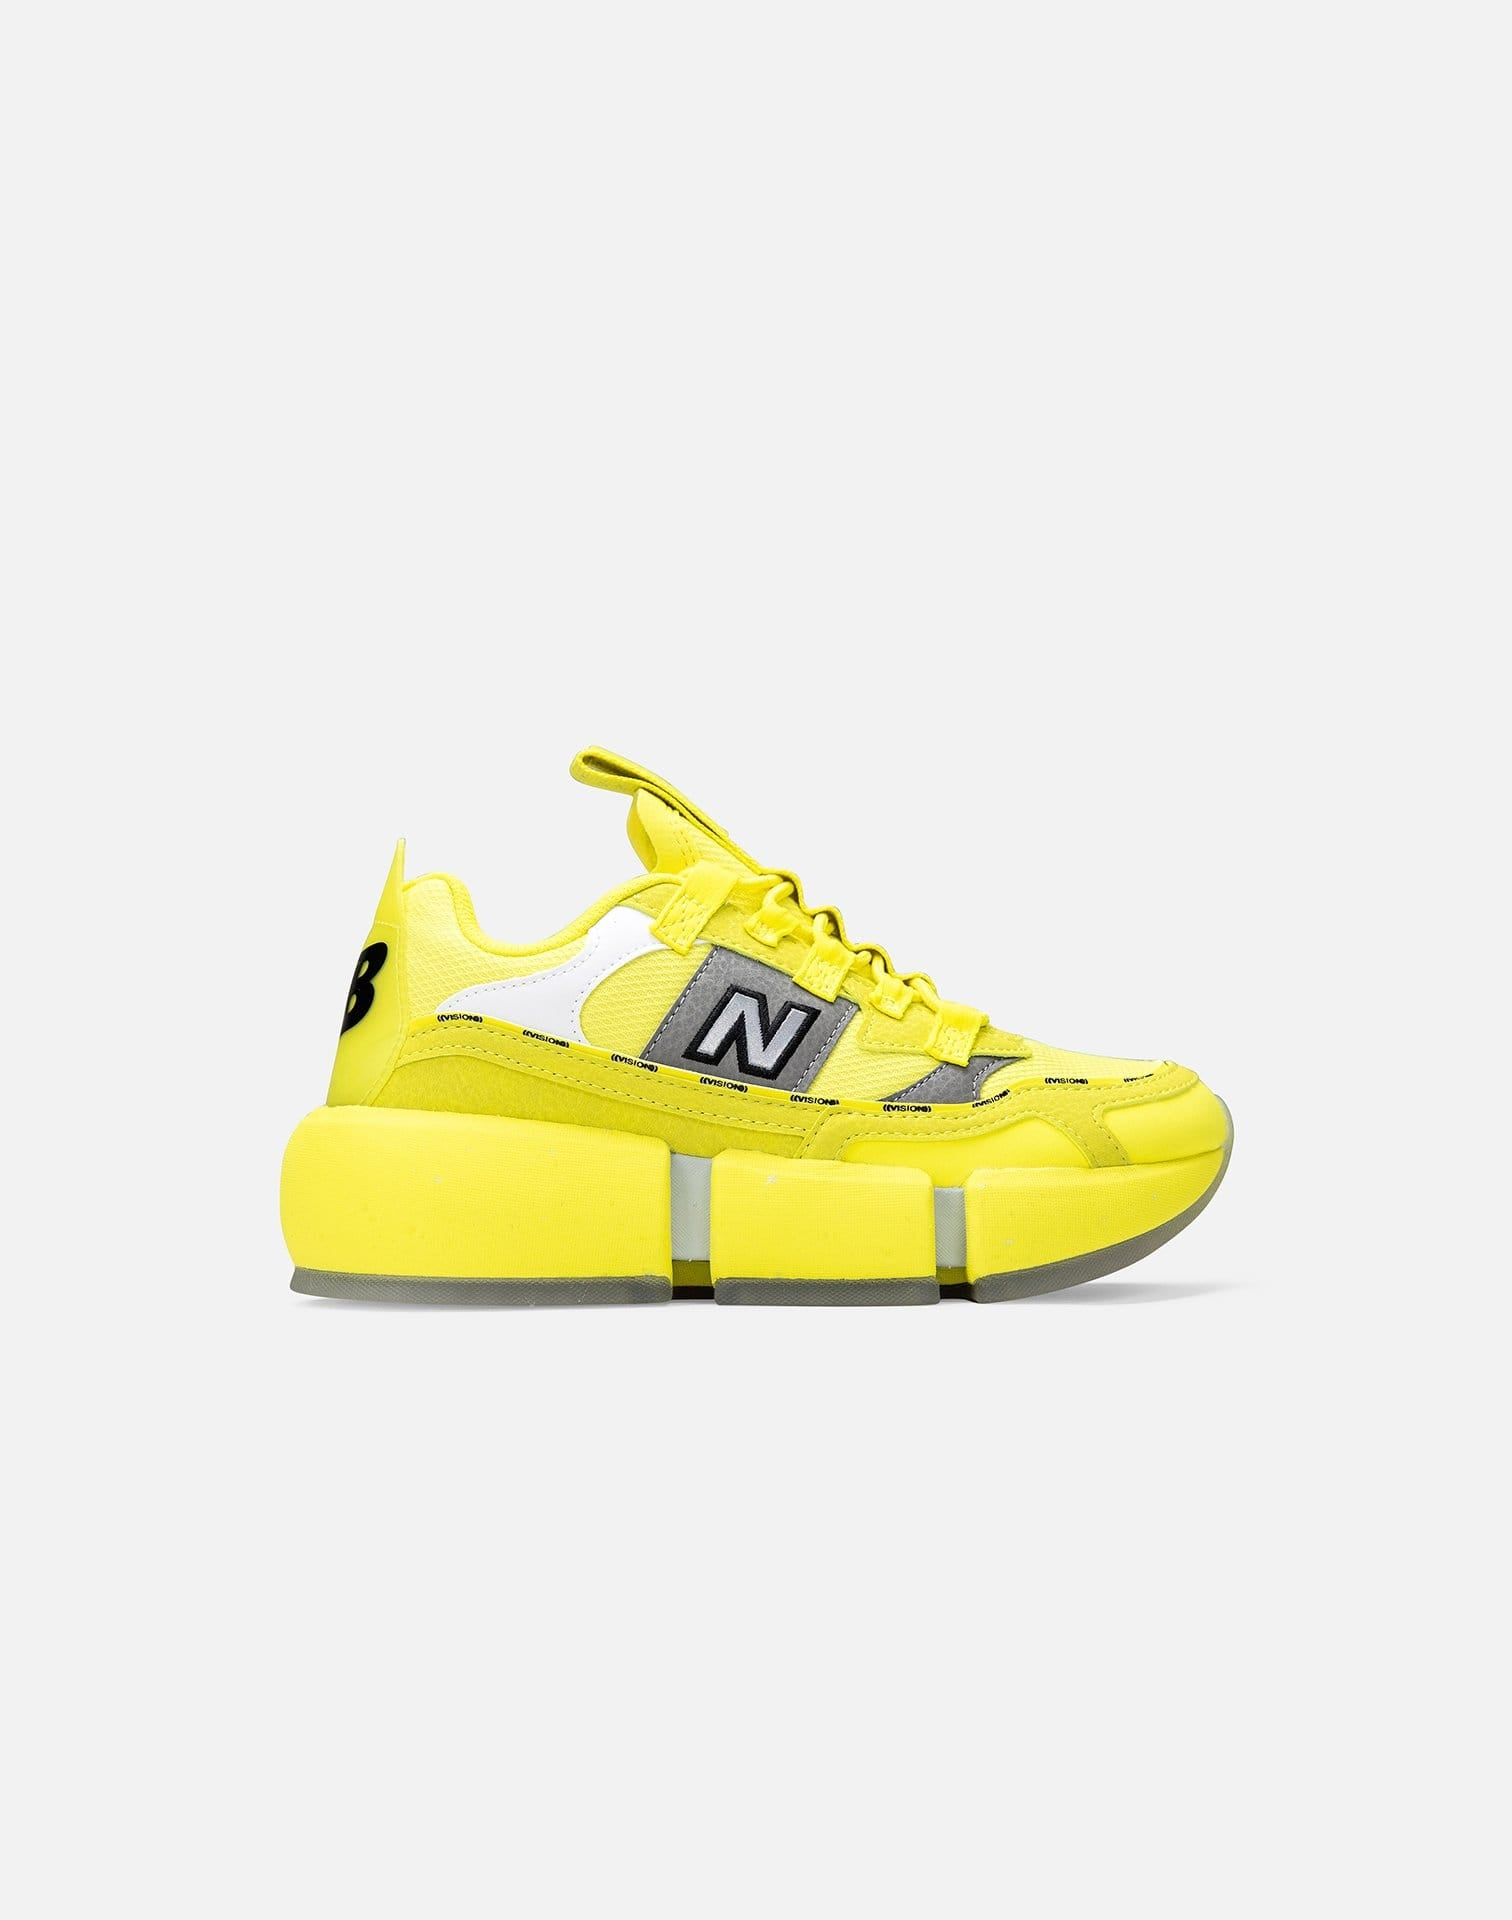 NewBalance VISION RACER 'JADEN SMITH' GRADE-SCHOOL